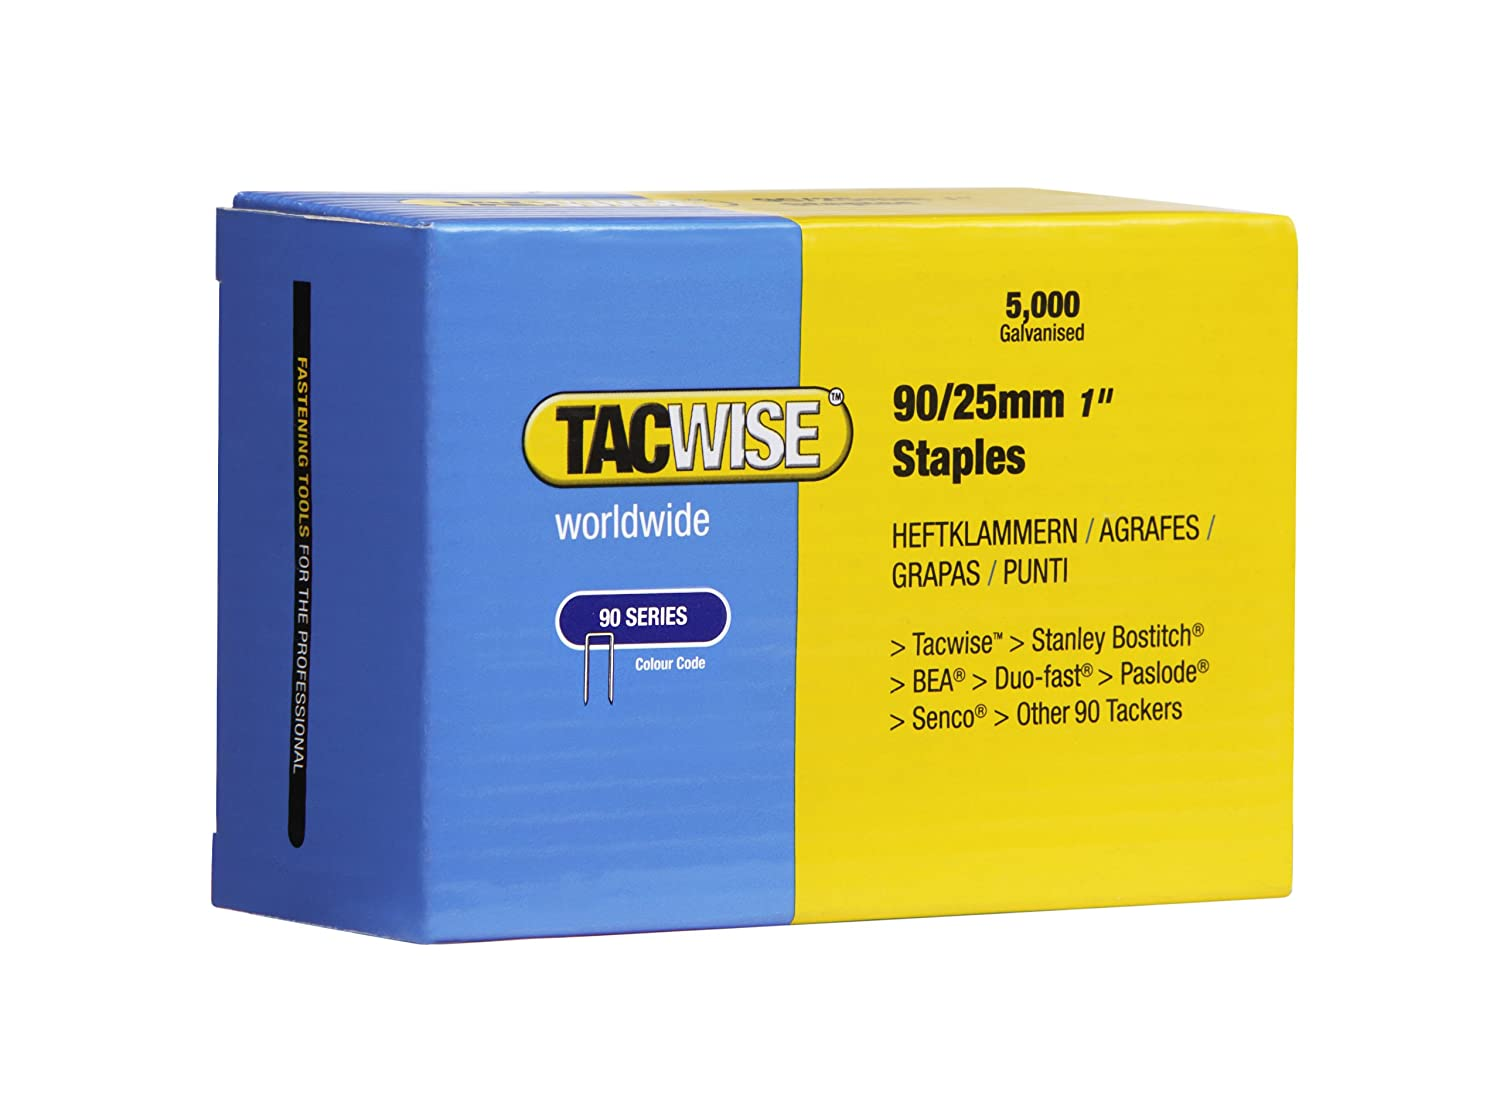 Tacwise 90/25mm Narrow Crown Staples (Box of 5000) 0308